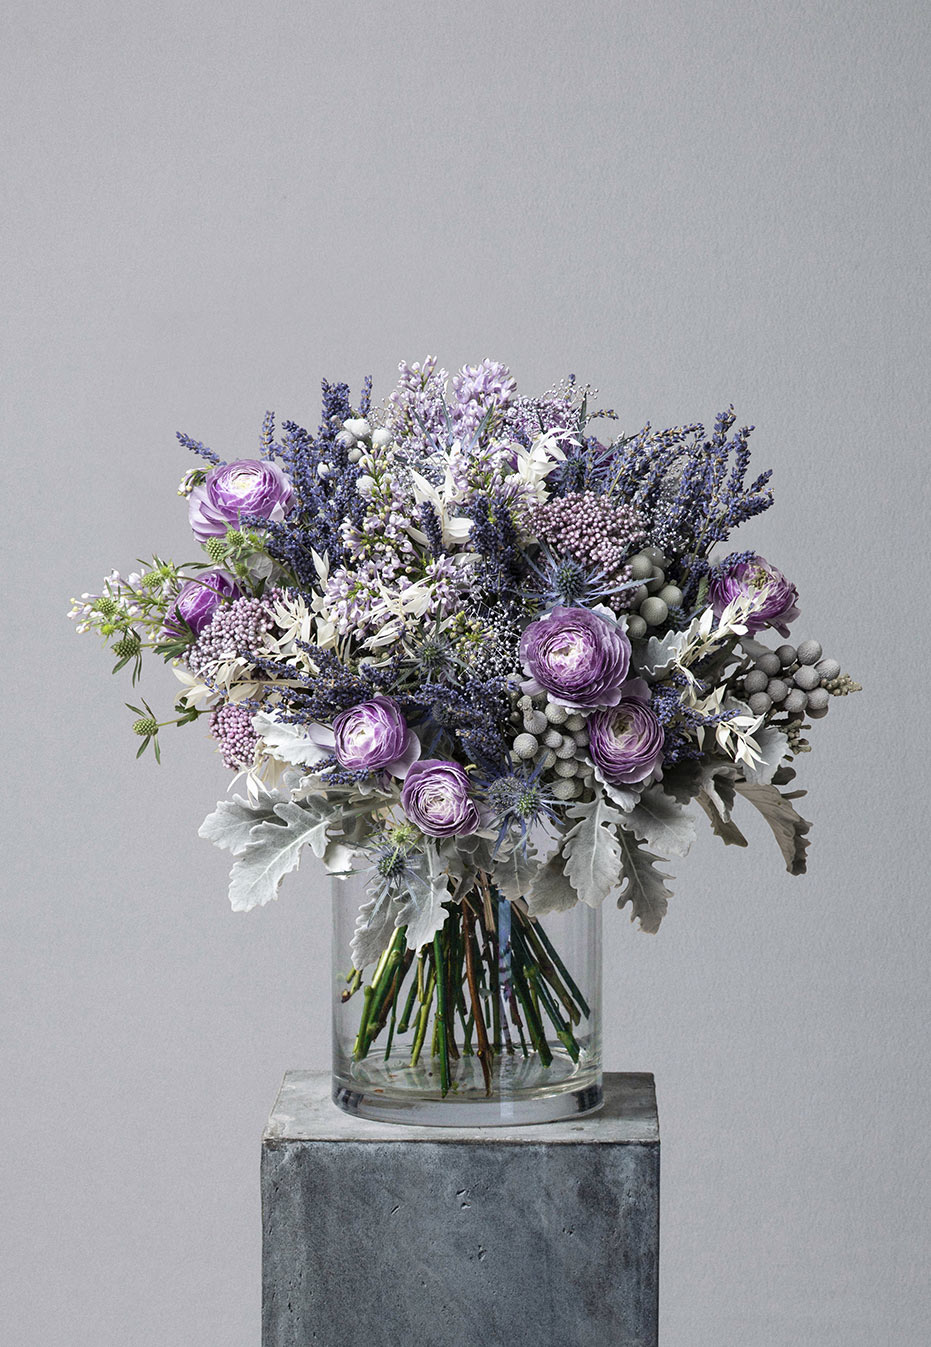 flower bouquet of ranunculus and lavender by flannel flowers